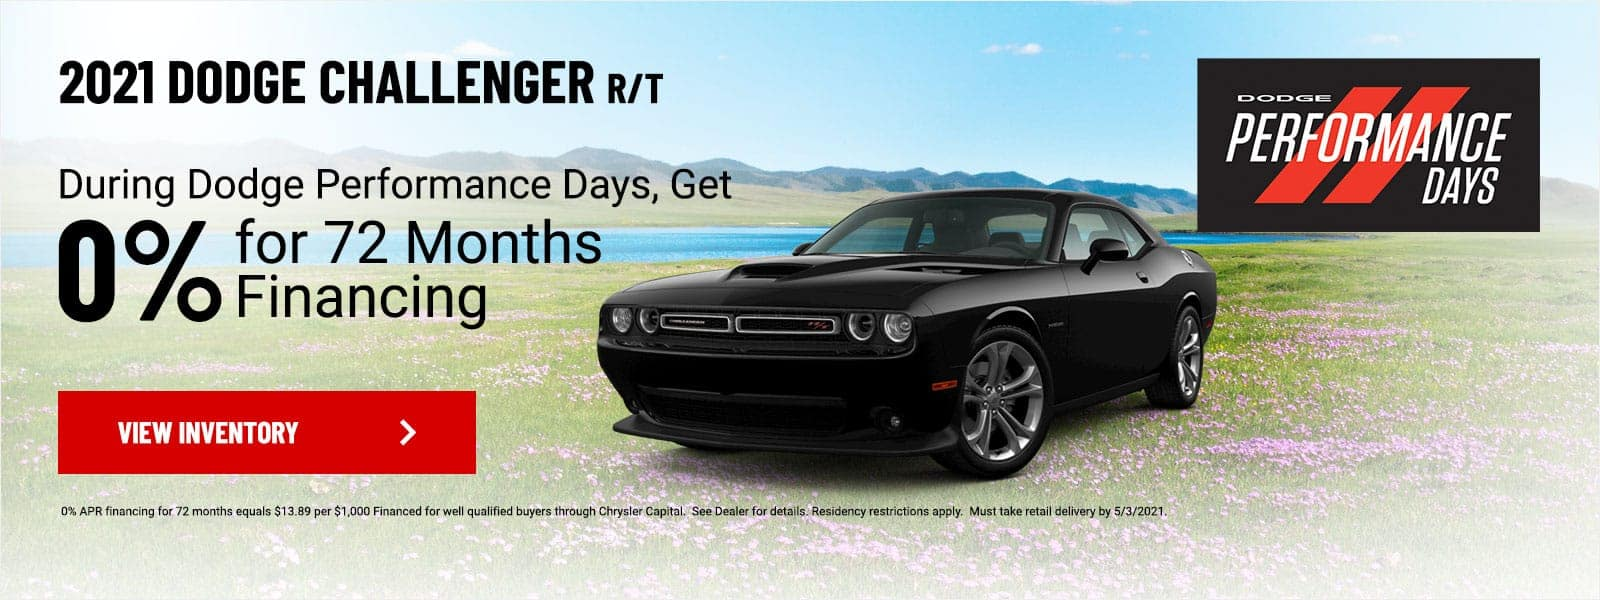 [All Markets] 21-dodge-Challenger